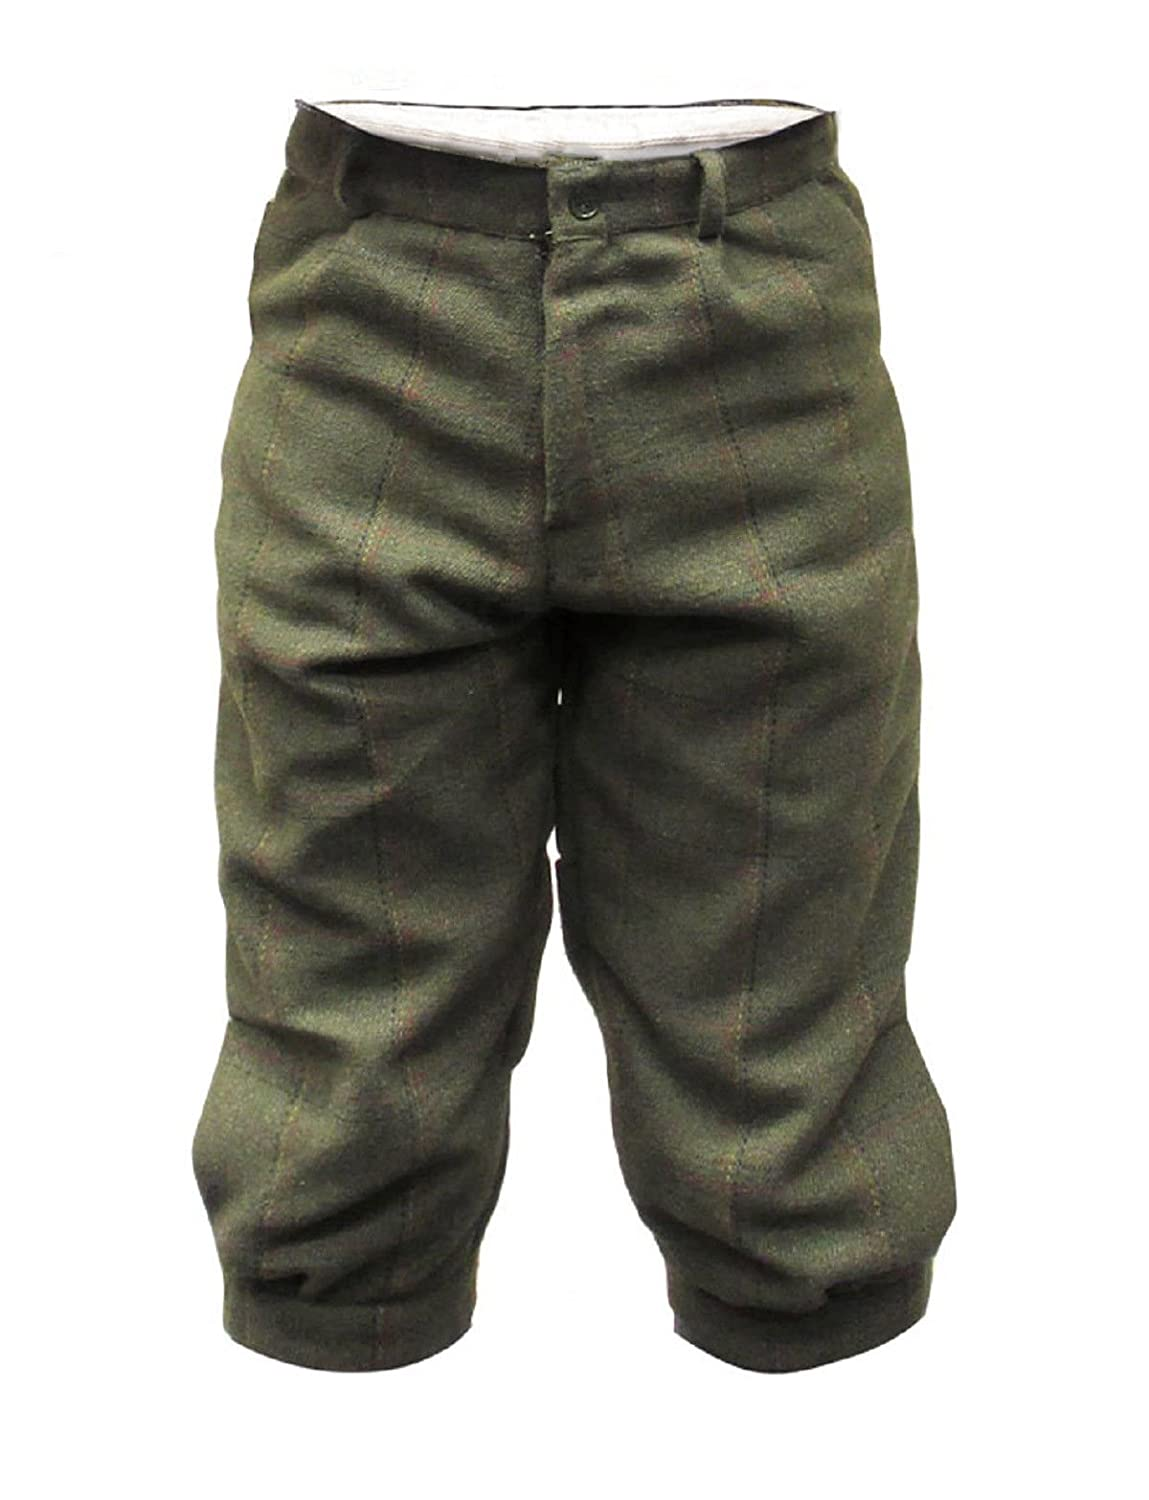 Men's Vintage Pants, Trousers, Jeans, Overalls Stormkloth Mens Hereford Tweed Breeks Trousers Breeches Hunting Shooting Fishing Field Farm $49.99 AT vintagedancer.com